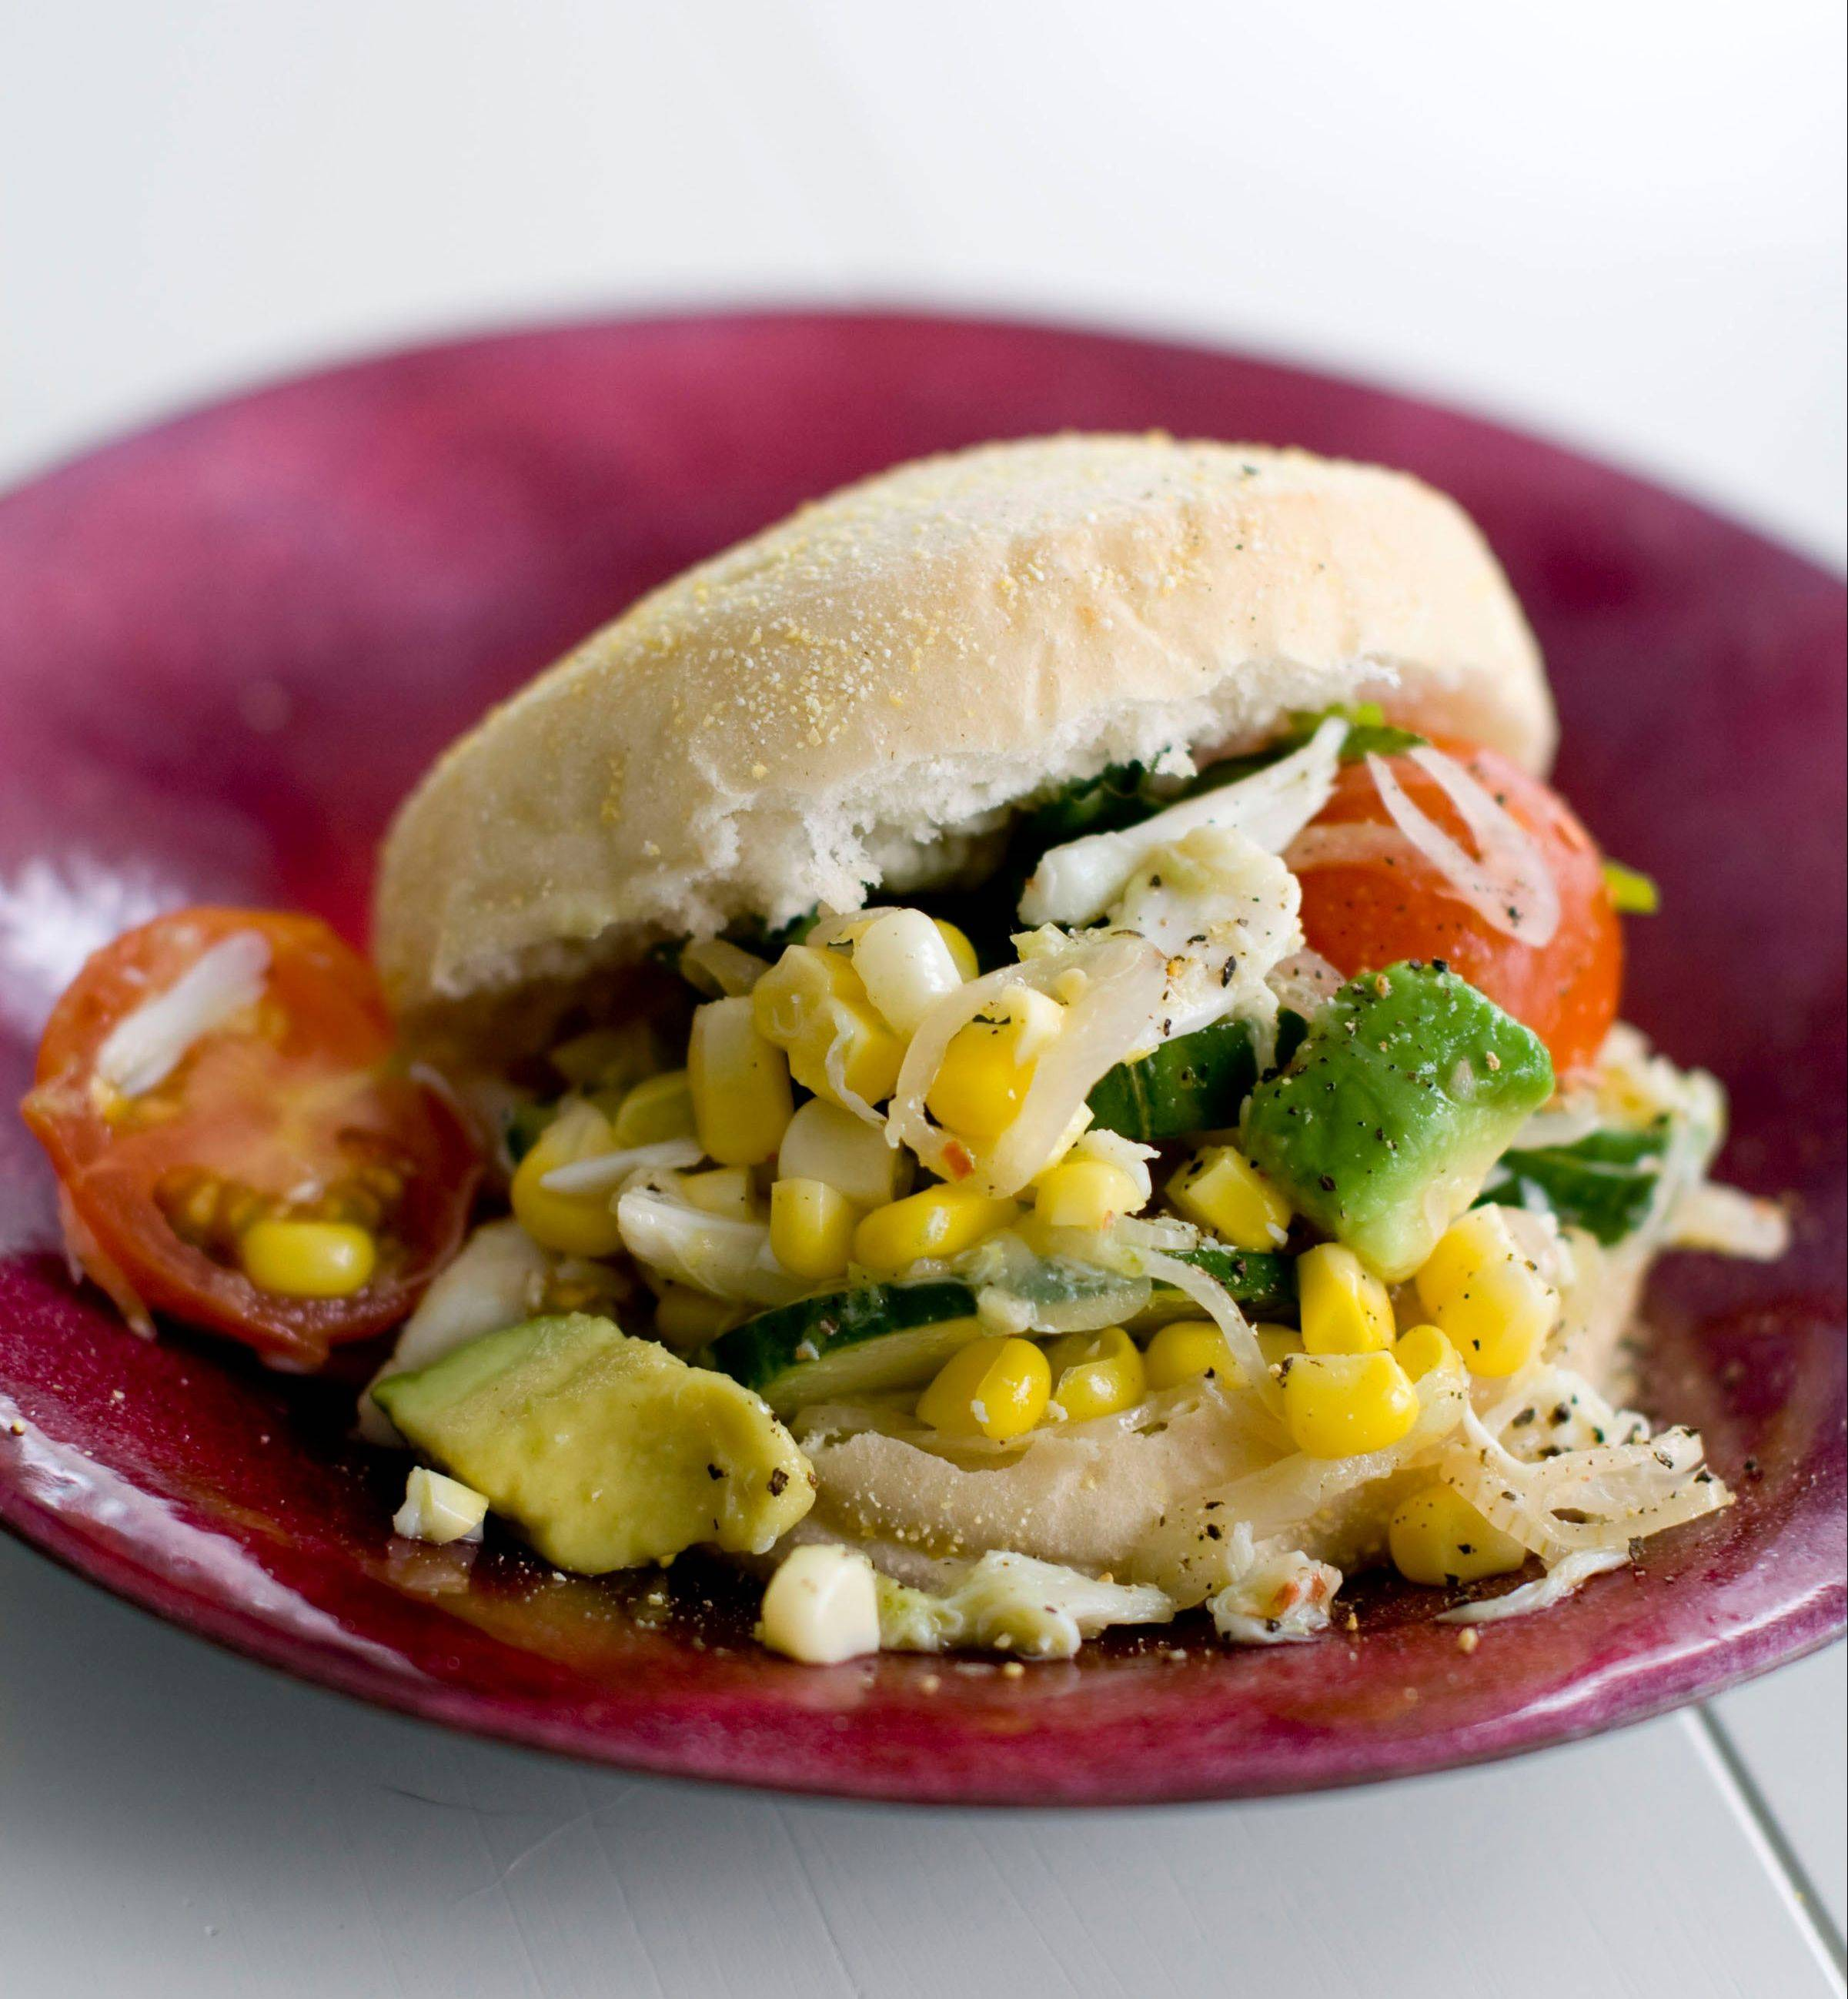 Seamus Mullen's simple summer salad of corn and jumbo lump crabmeat can be enjoyed in a bowl or on a bun.